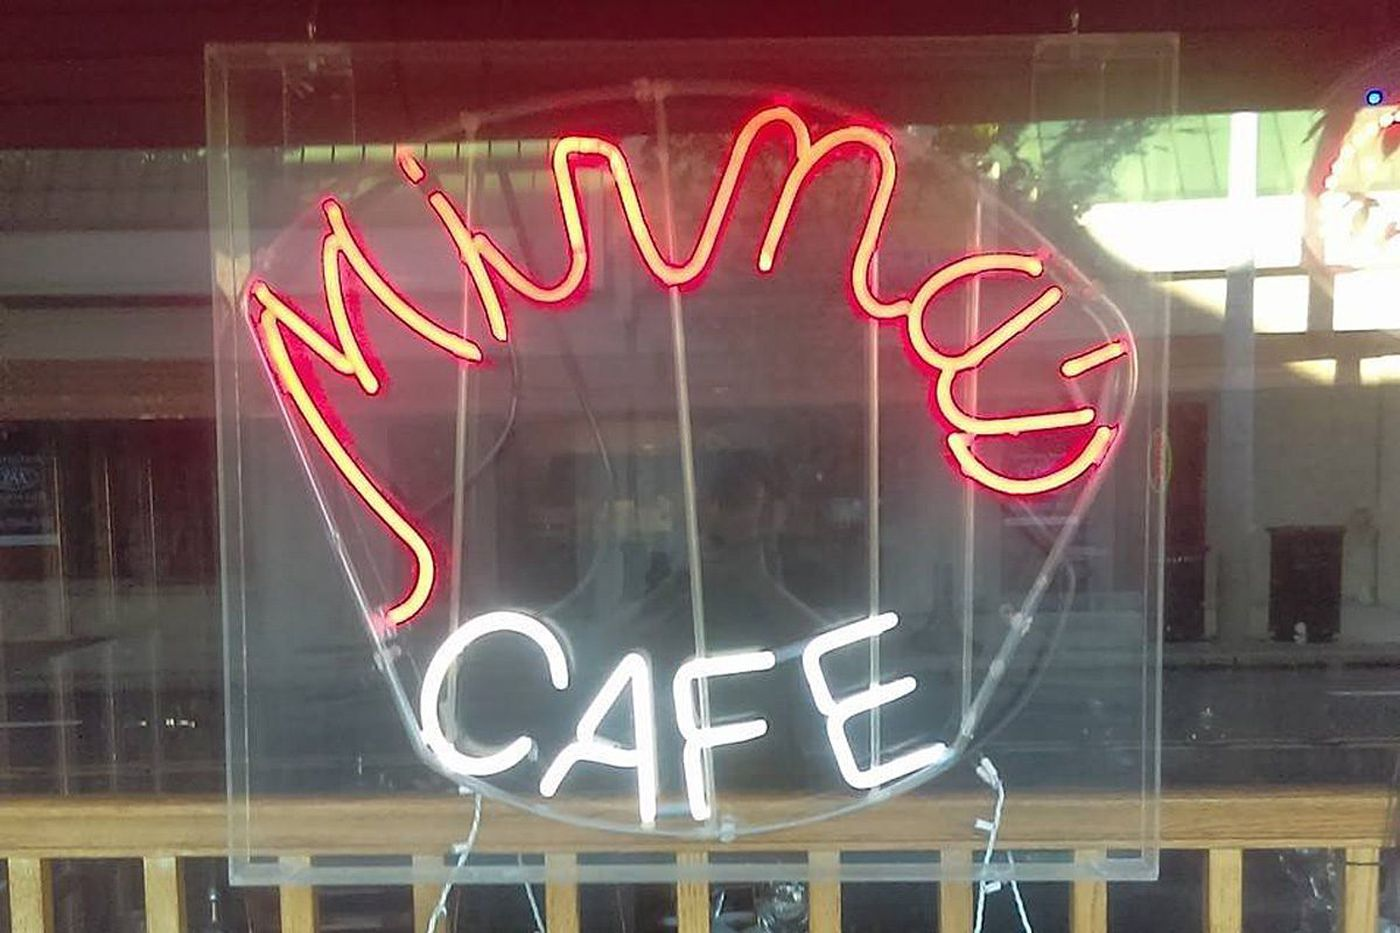 Mirna's Cafe in Jenkintown closes after 25 years